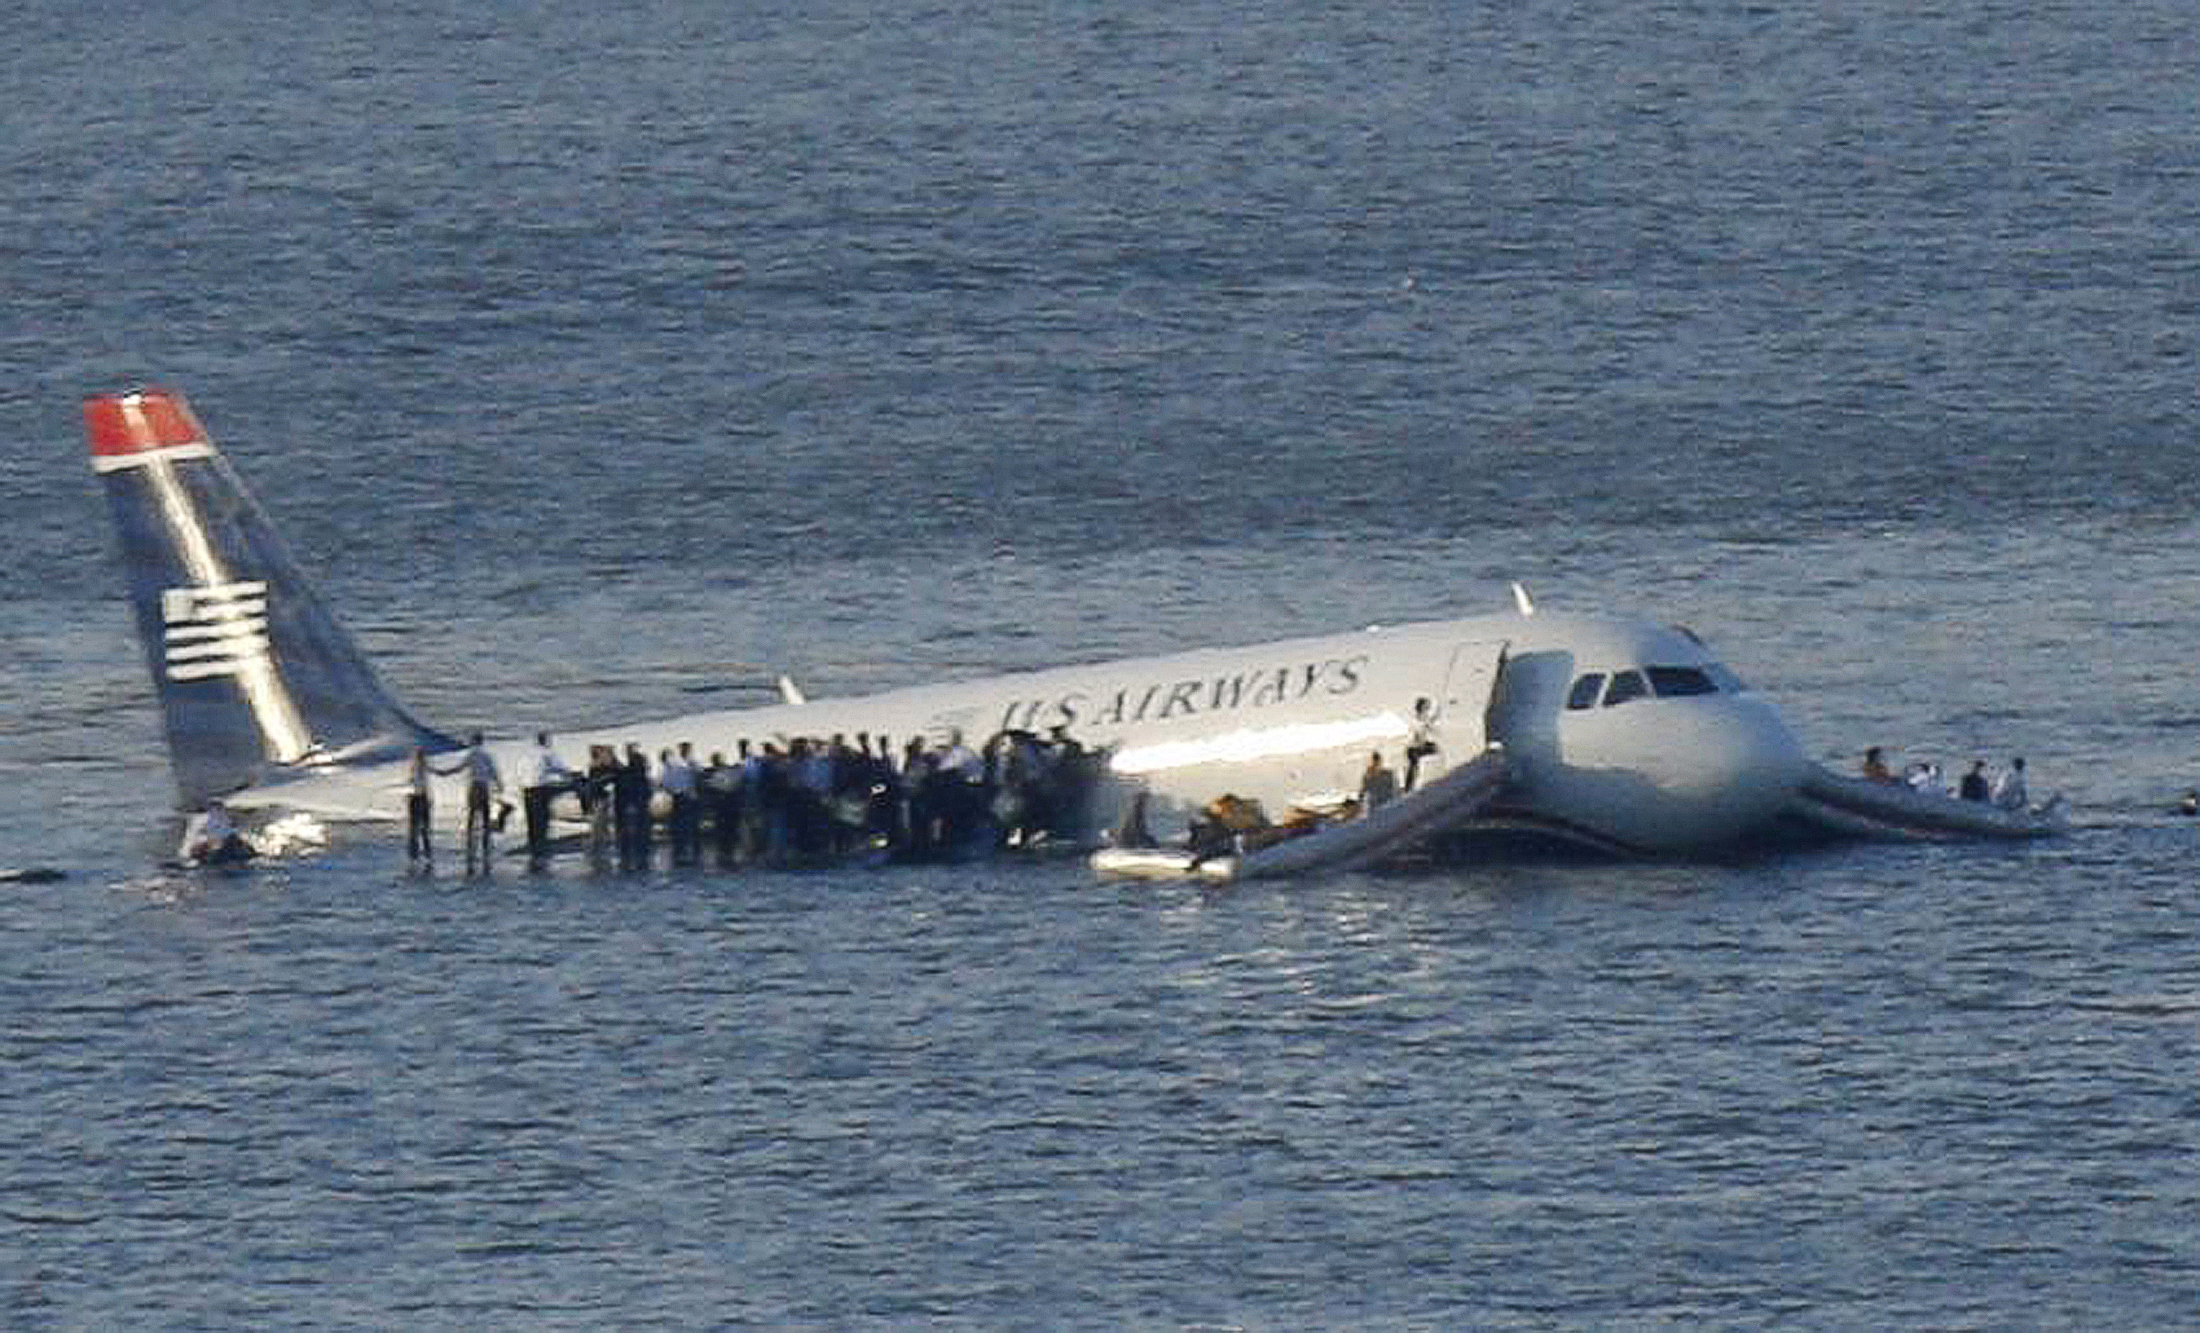 Passengers stand on the wings of a U.S. Airways plane as a ferry pulls up to it after it landed in the Hudson River in New York.